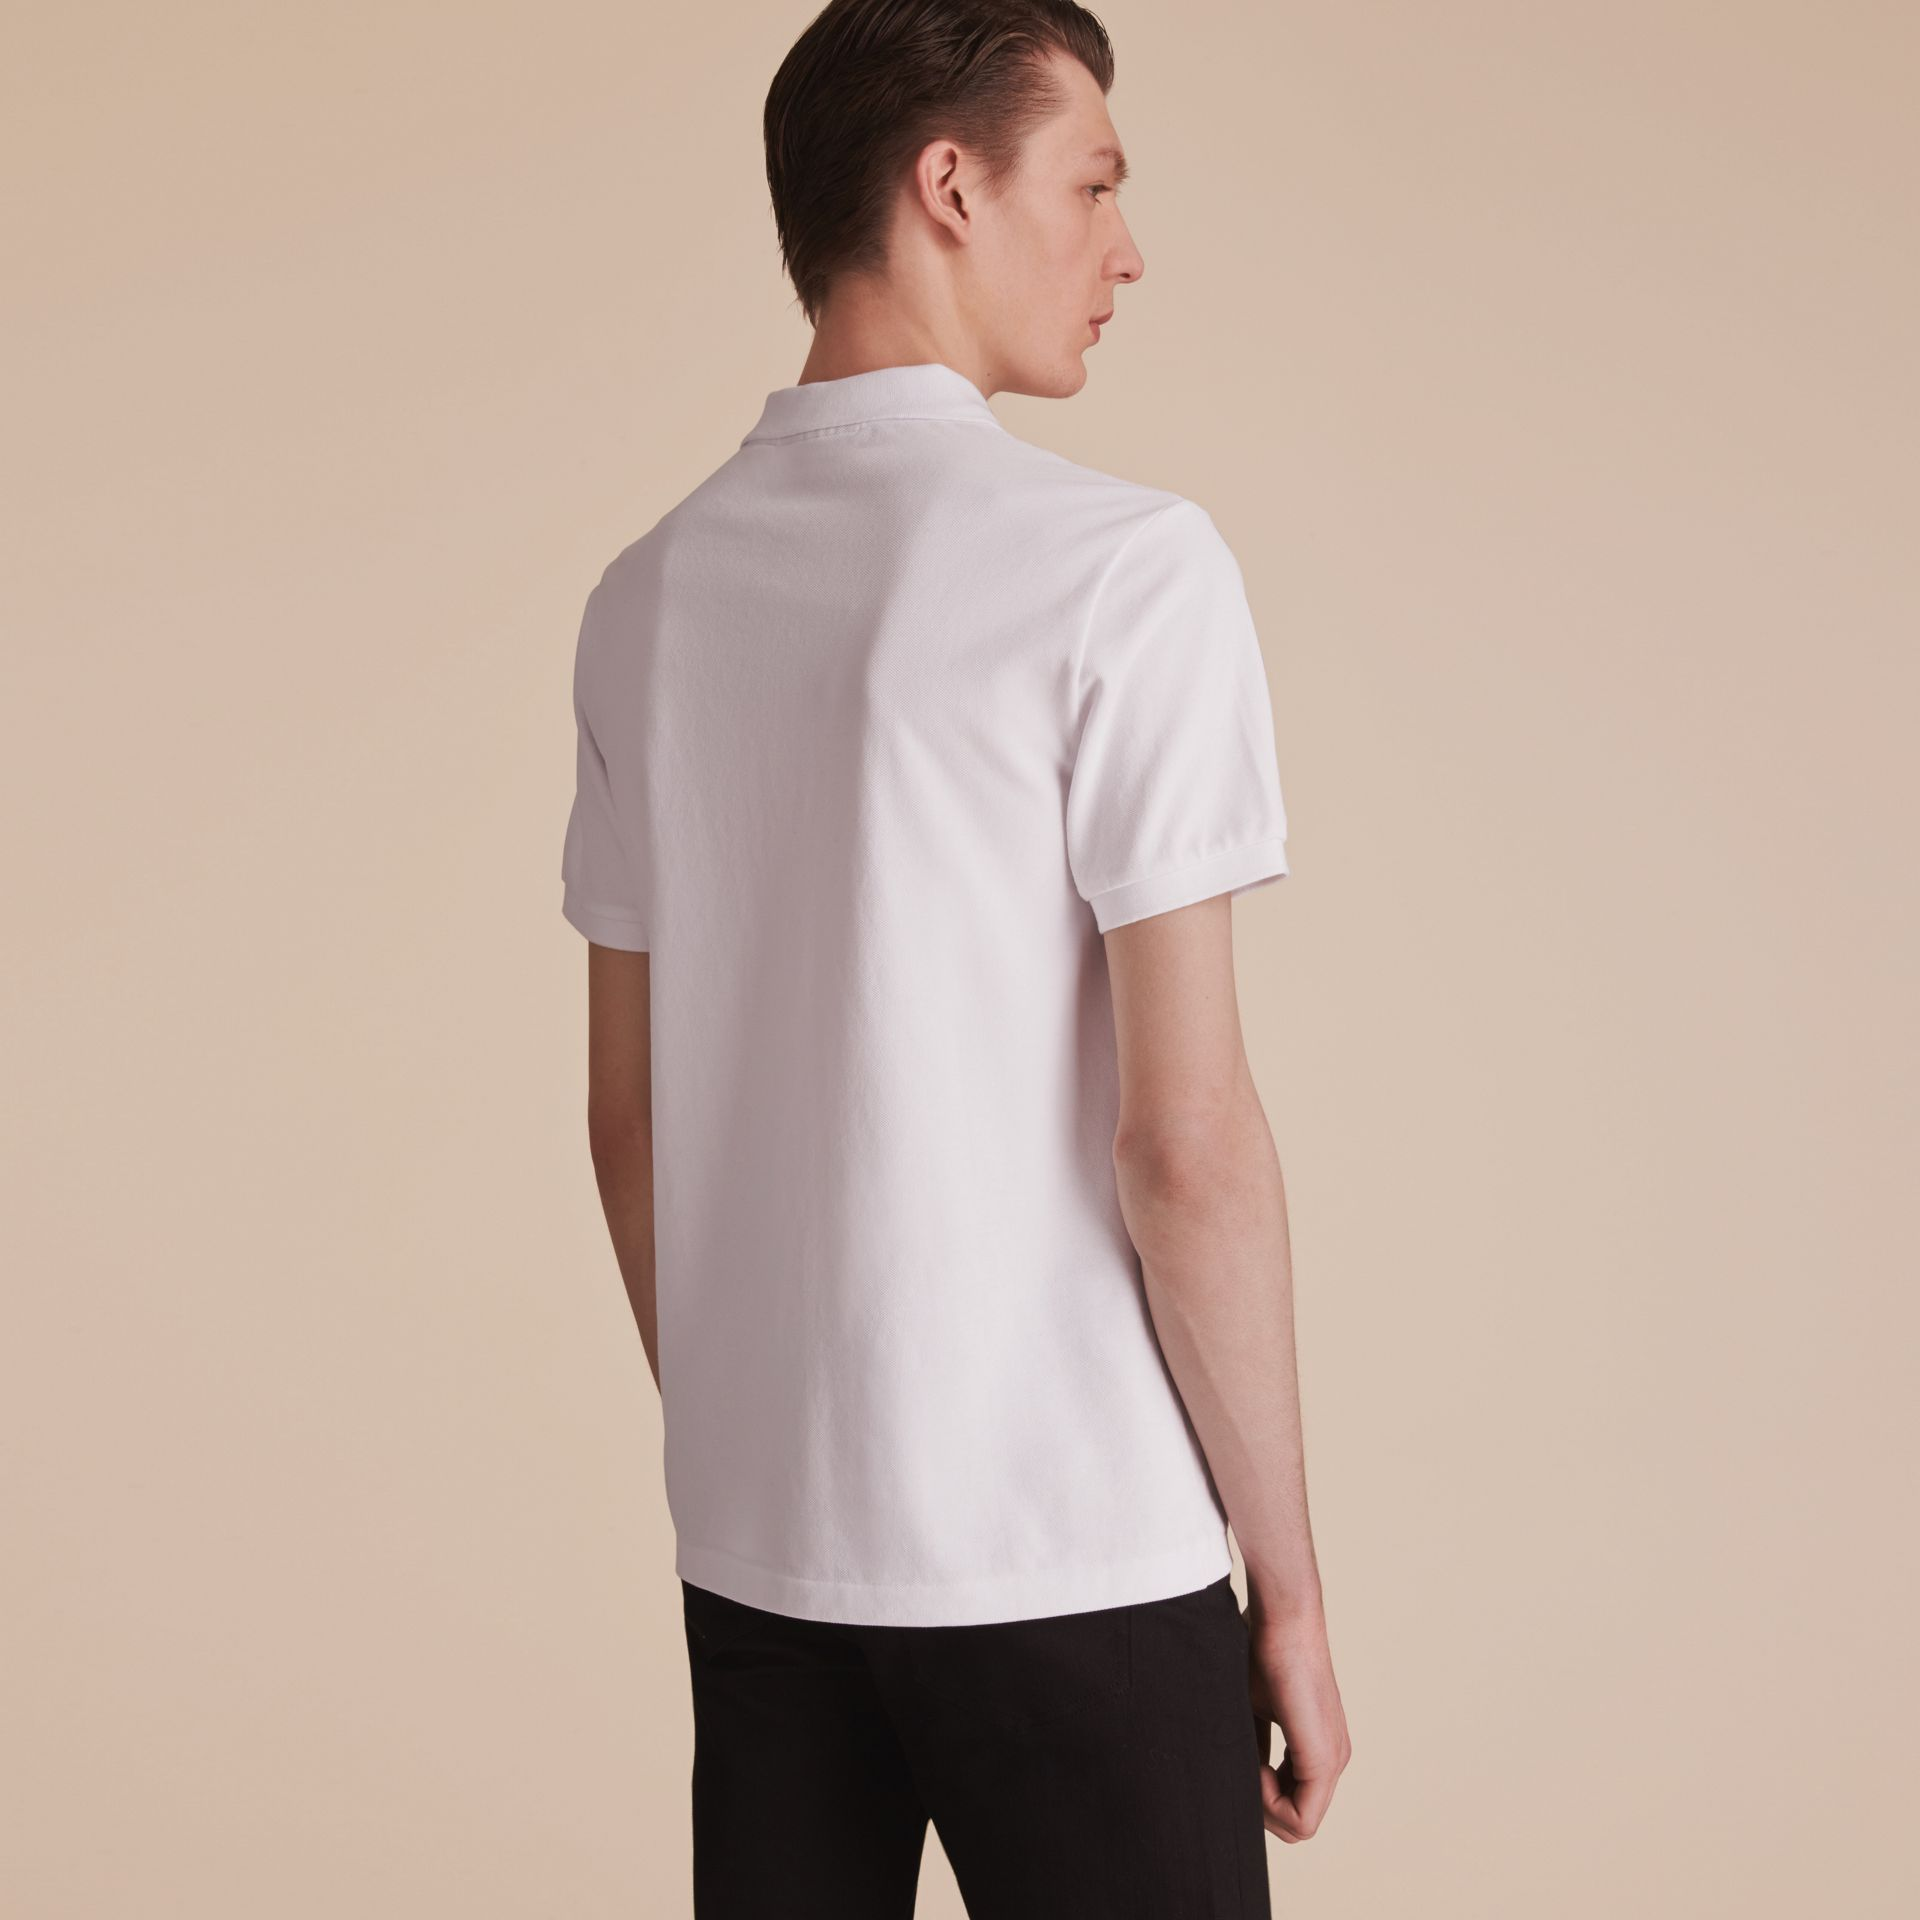 Beasts Motif Cotton Piqué Polo Shirt in White - Men | Burberry - gallery image 3